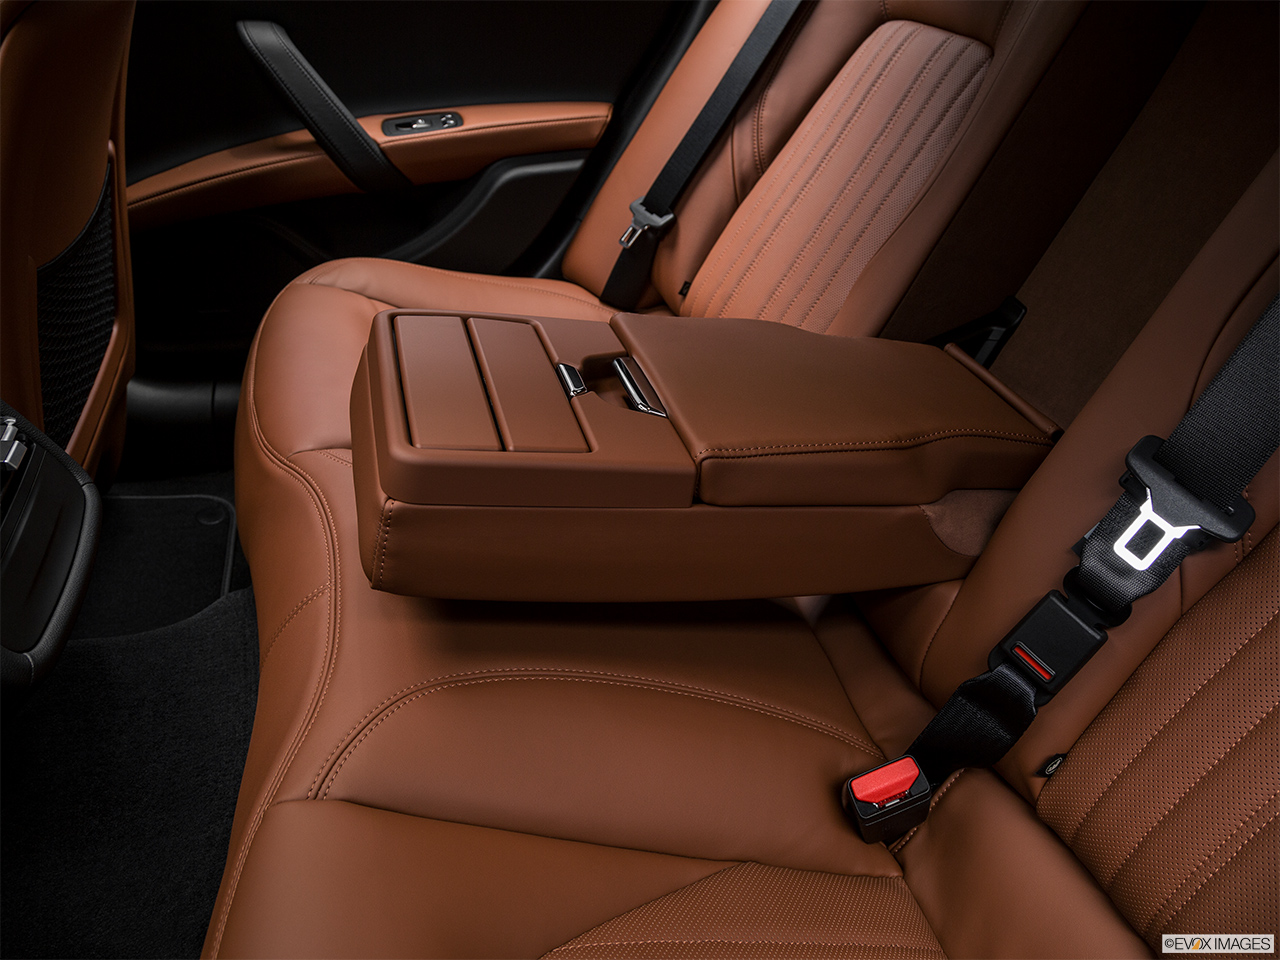 2018 Maserati Ghibli  S Granlusso Rear center console with closed lid from driver's side looking down.